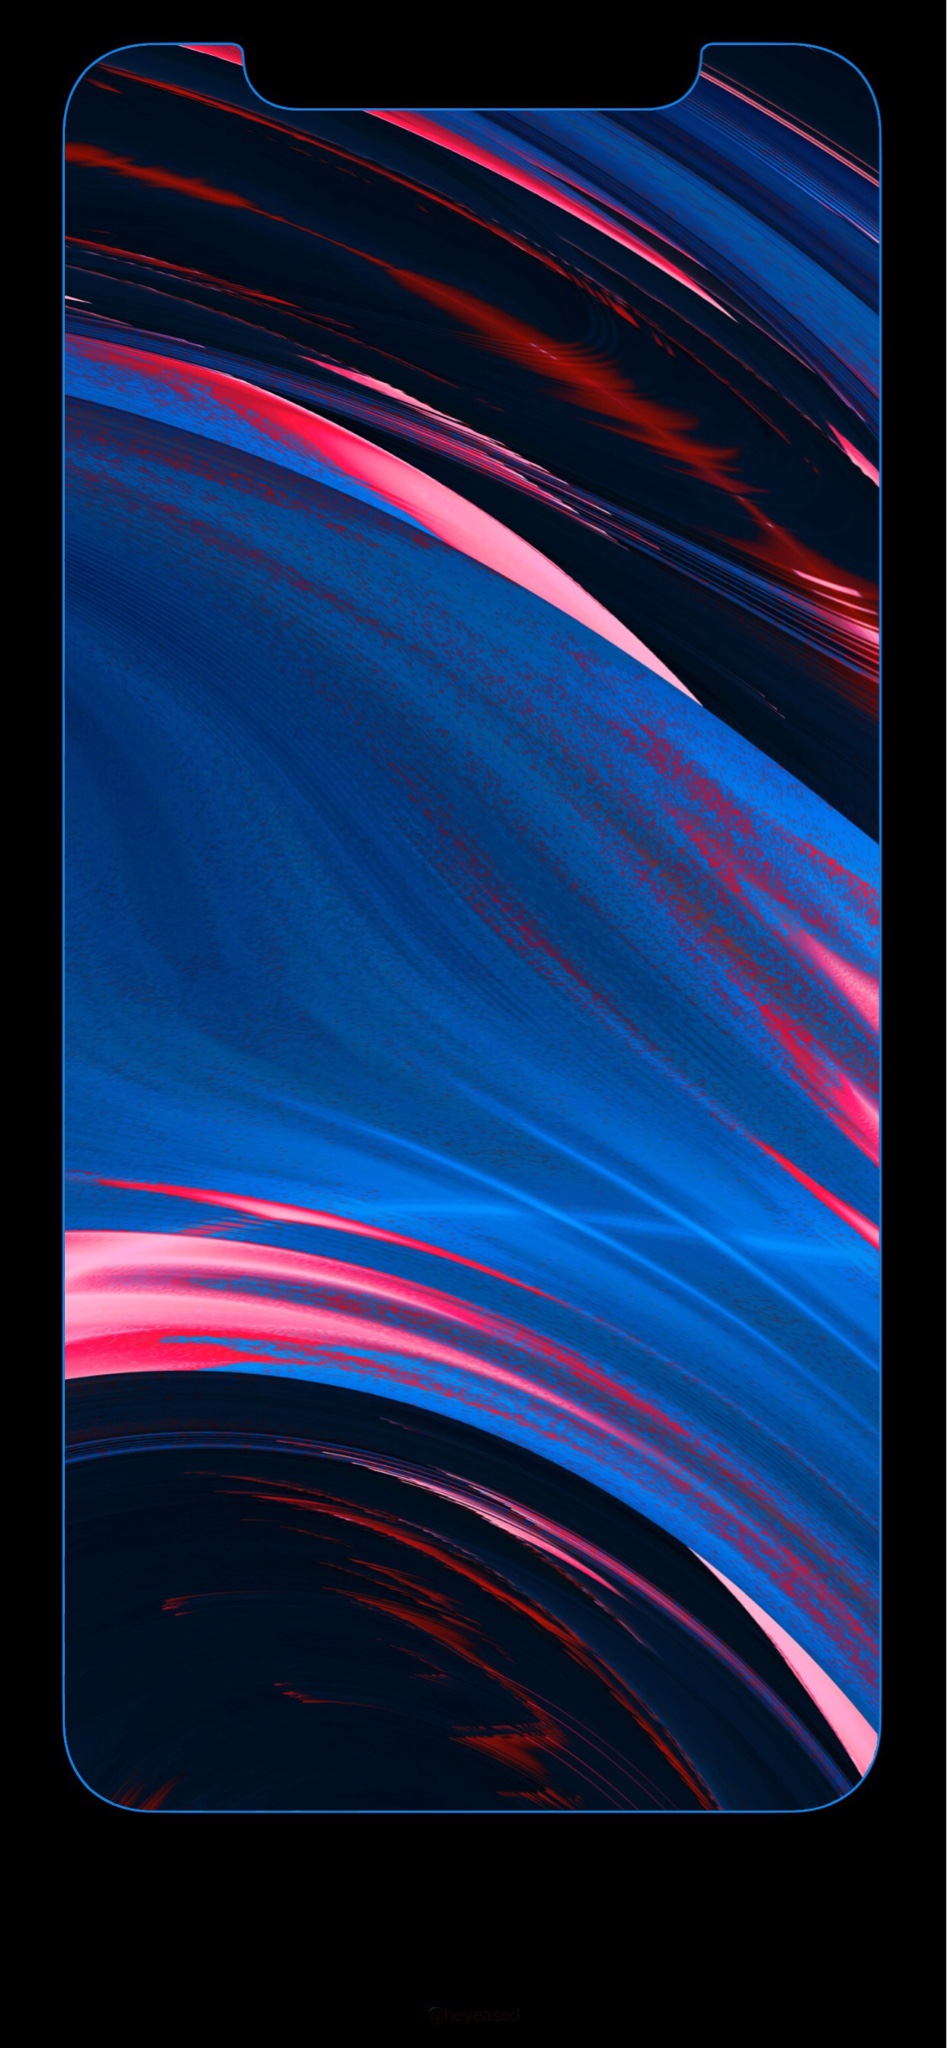 The Iphone Xs Max Pro Max Wallpaper Thread Page 12